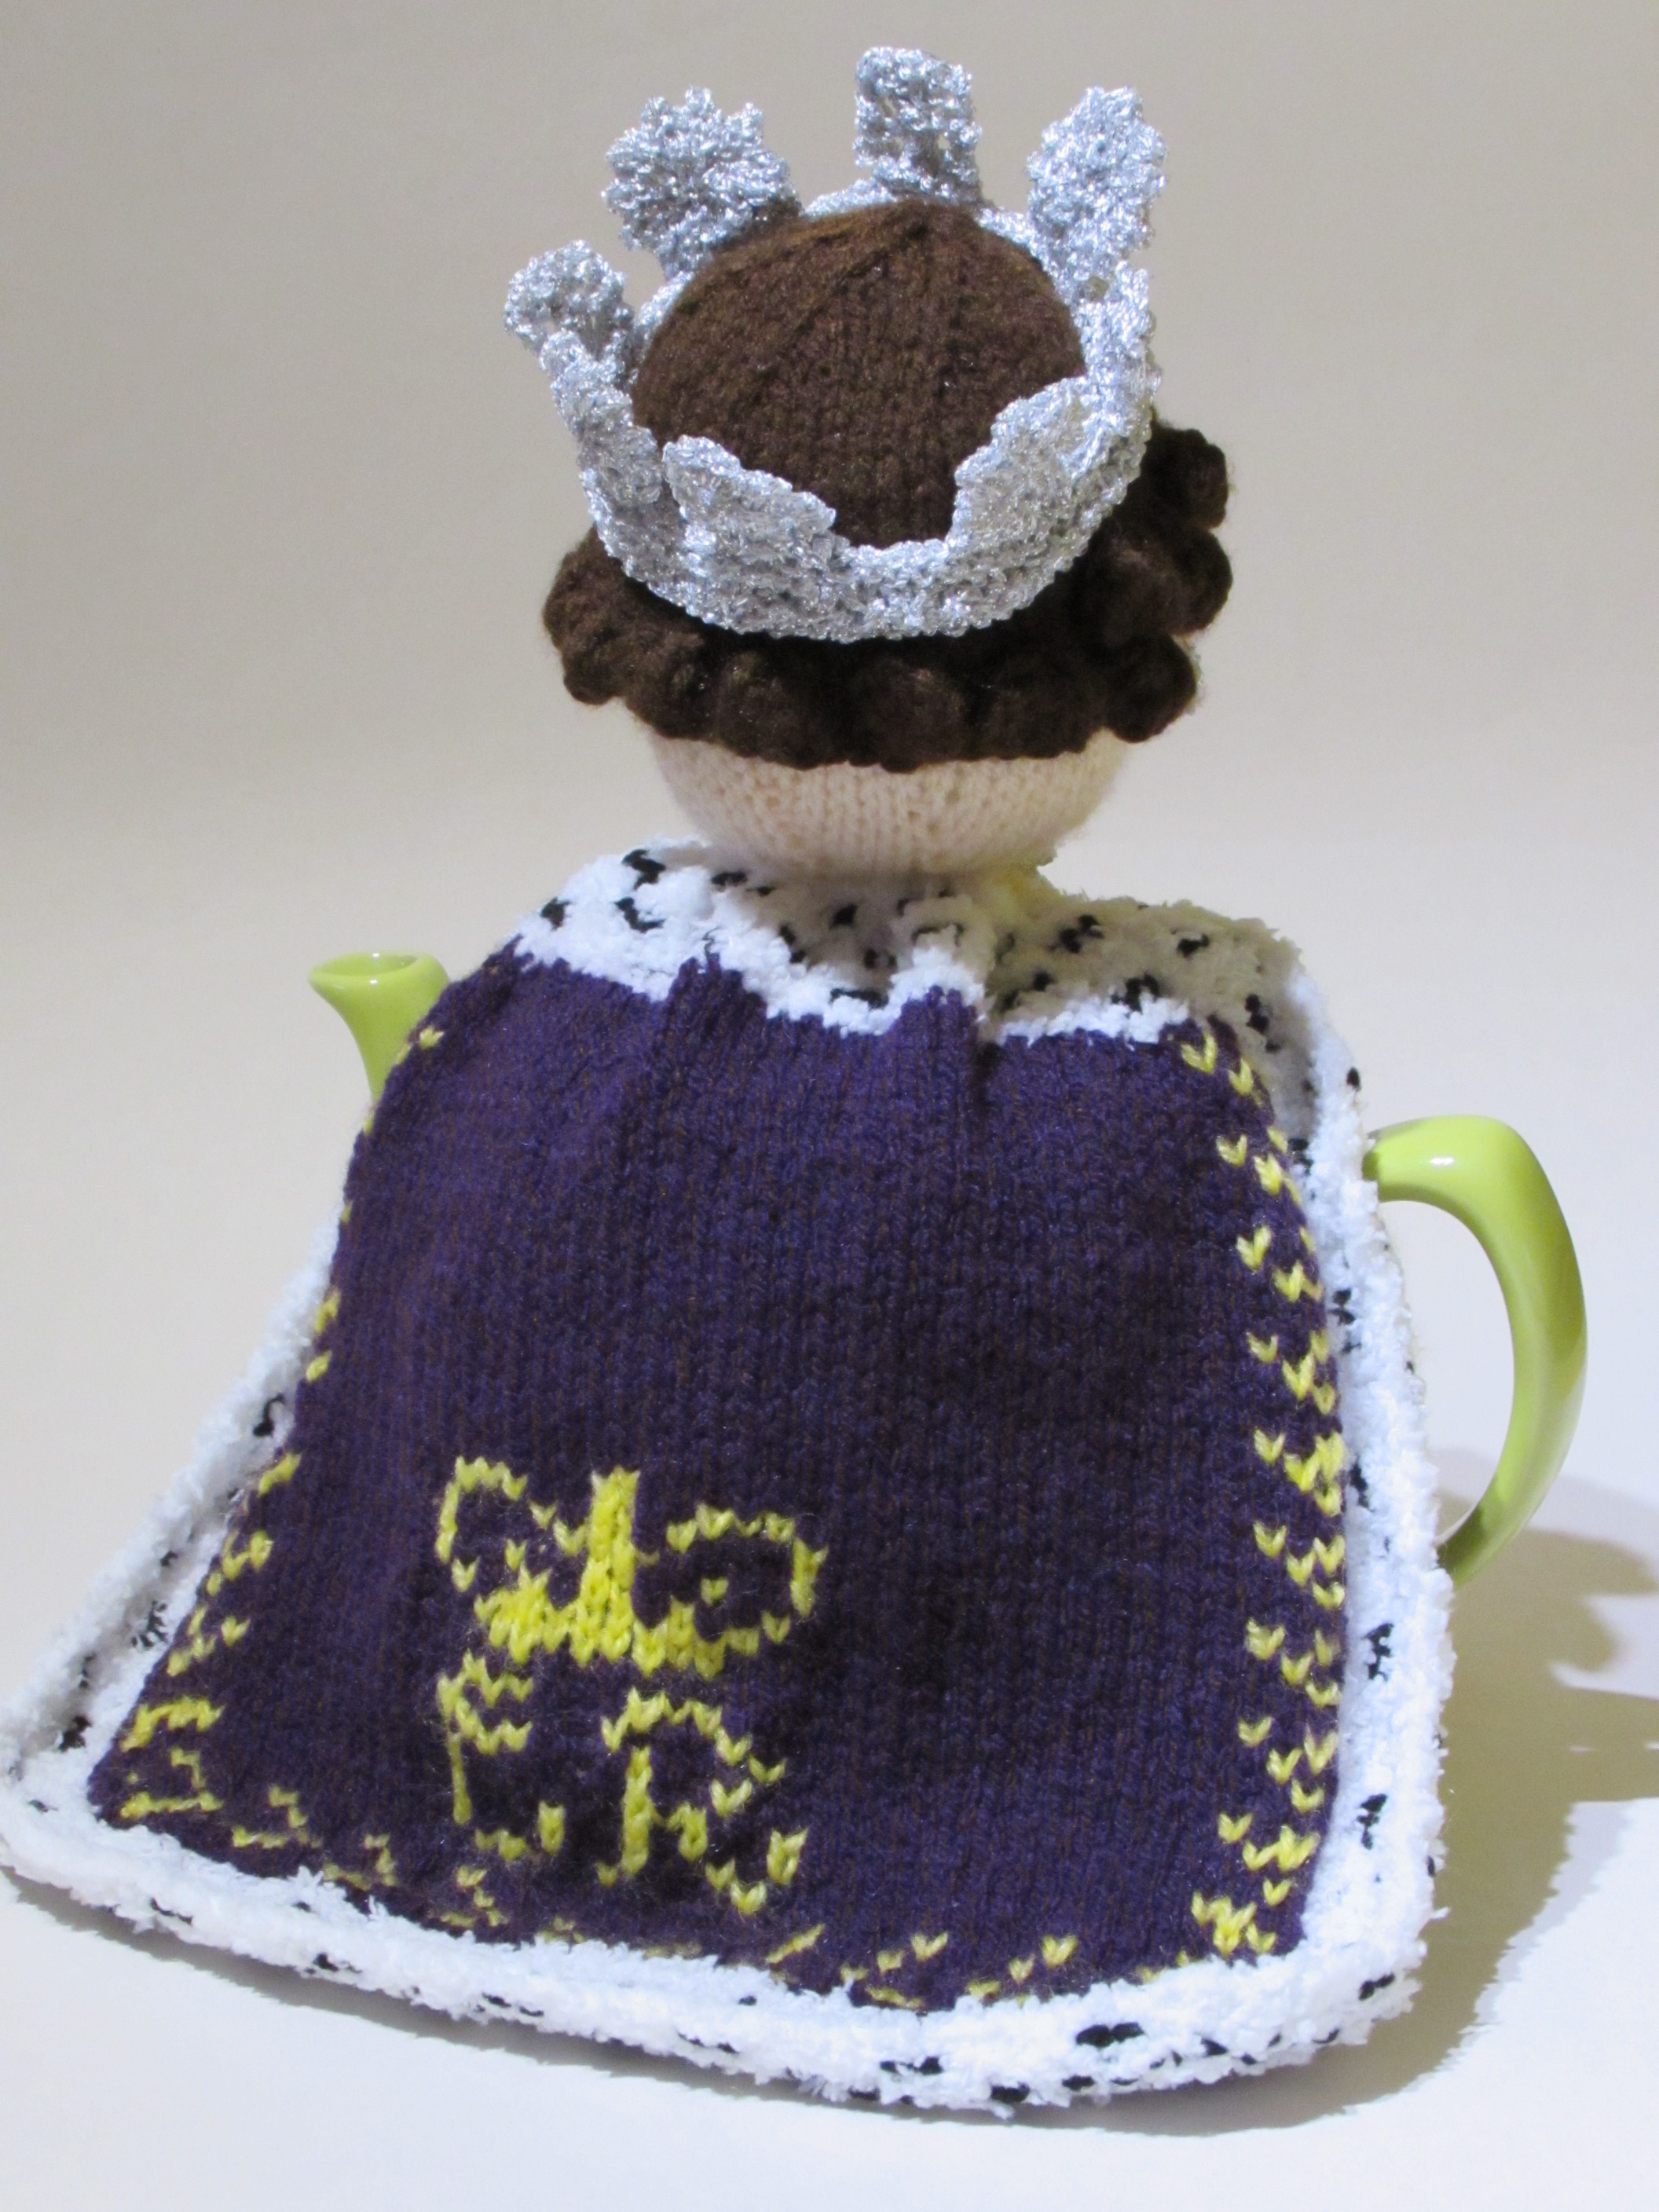 1950s queen elizabeth ii tea cosy knitting pattern